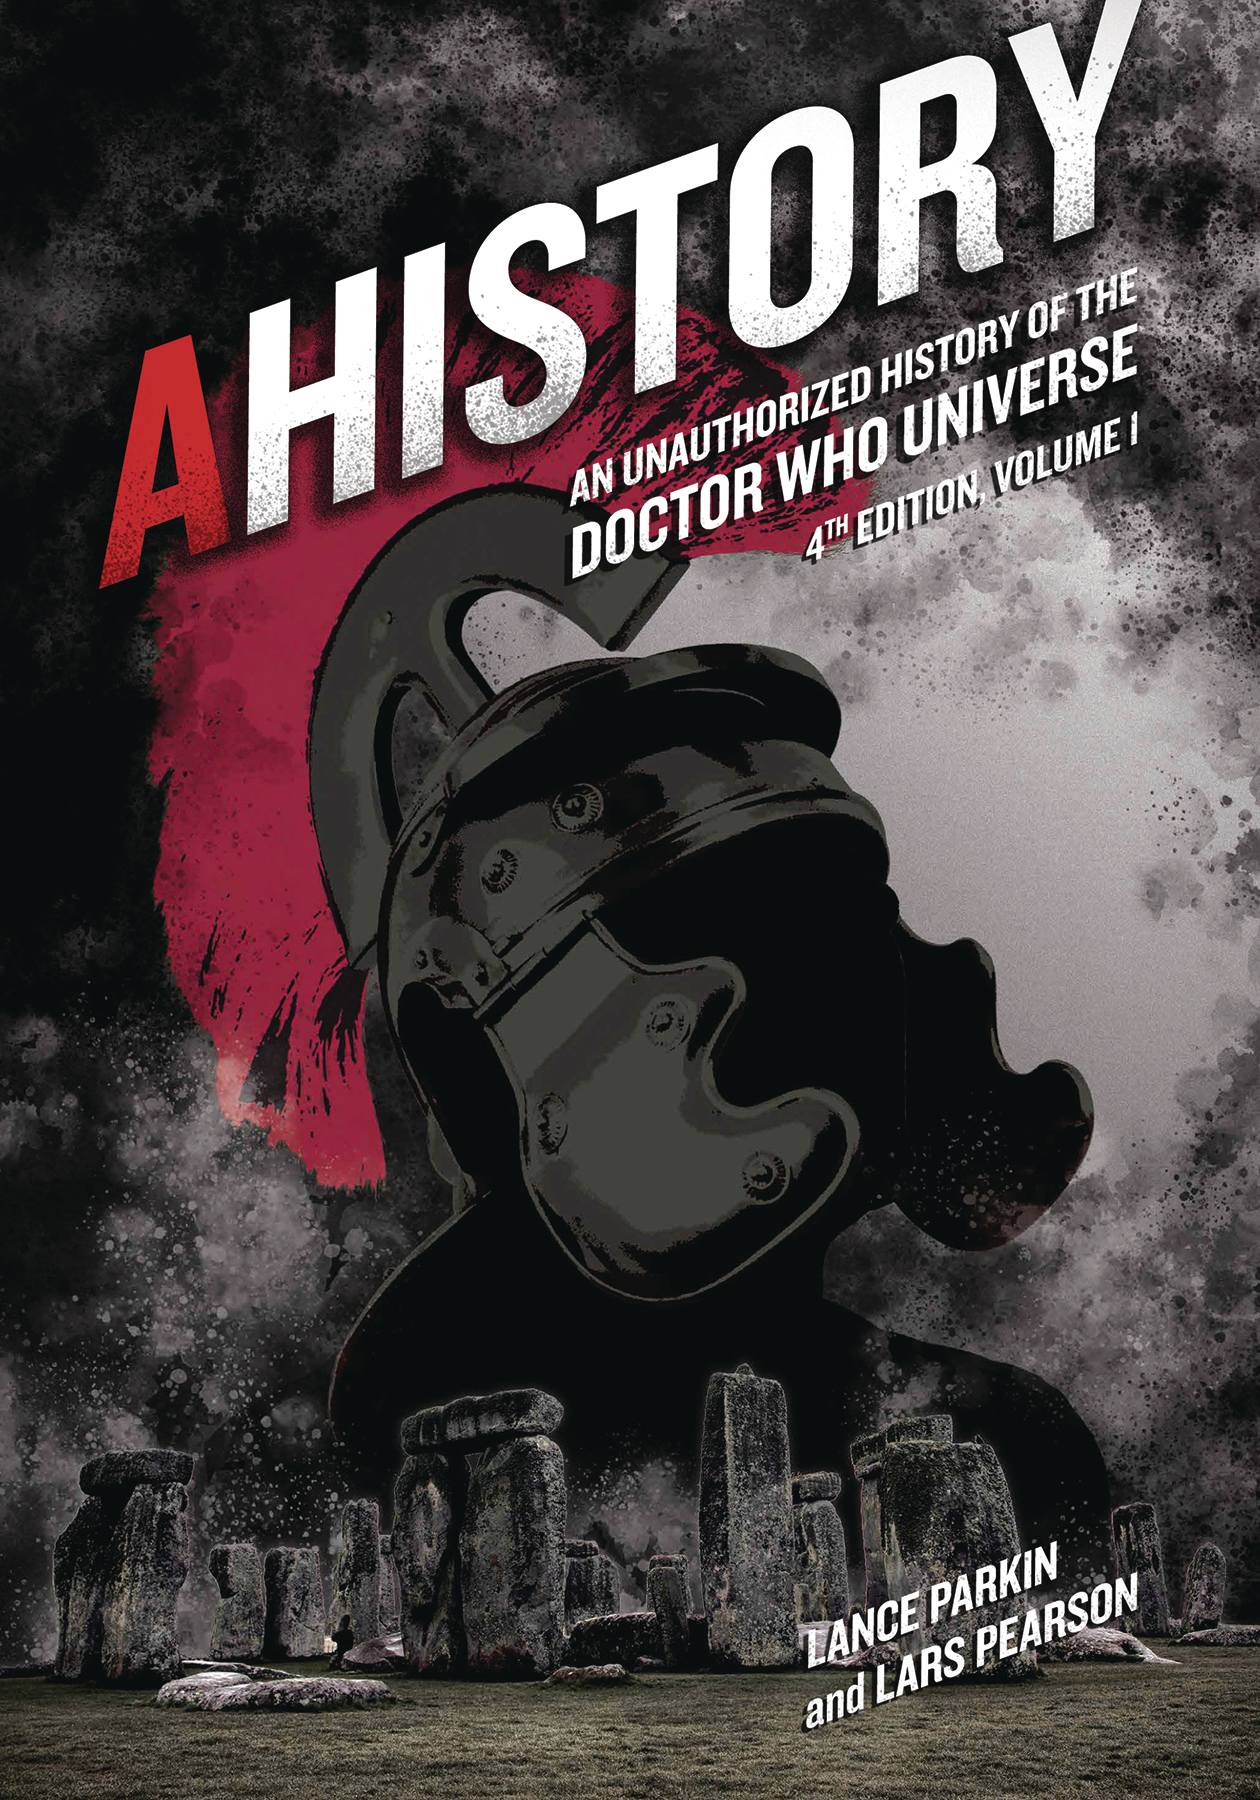 AHISTORY UNAUTH HIST OF DOCTOR WHO UNIVERSE 4TH ED VOL 01 (C